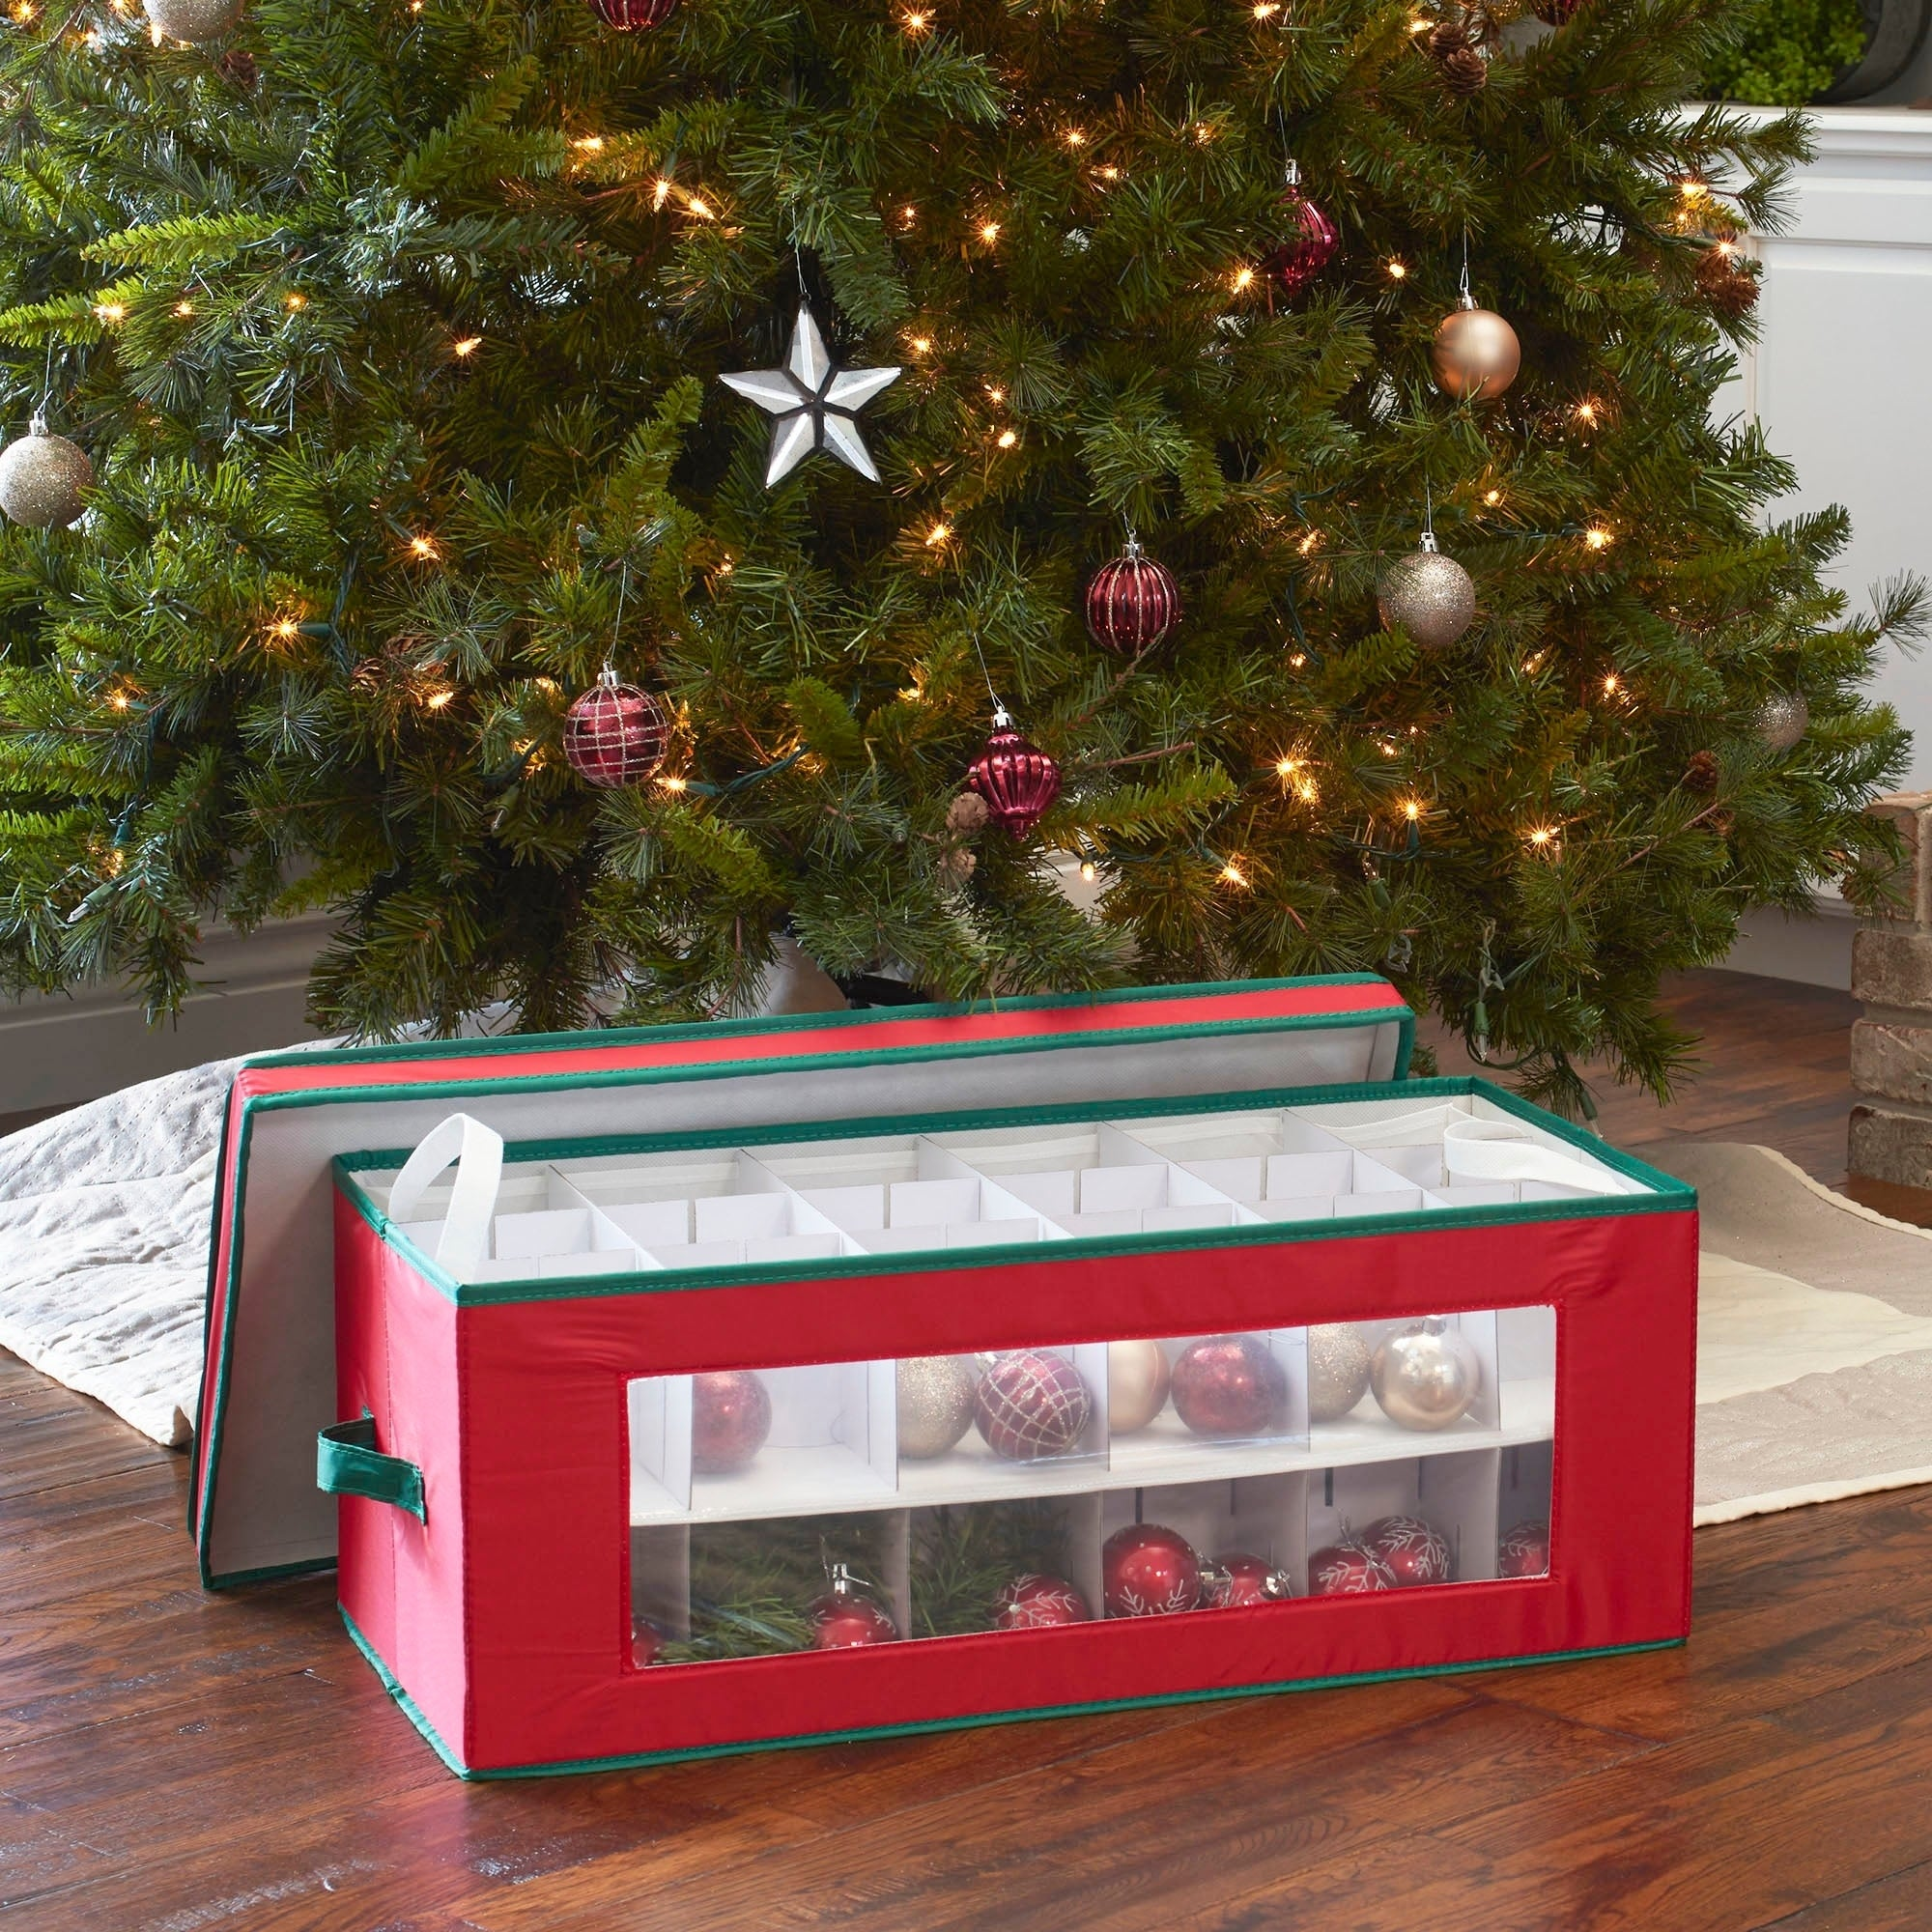 Large Christmas Ornaments.Household Essentials Large Christmas Tree Ornament Storage Box For 36 Xmas Ornaments Red Bin W Green Trim